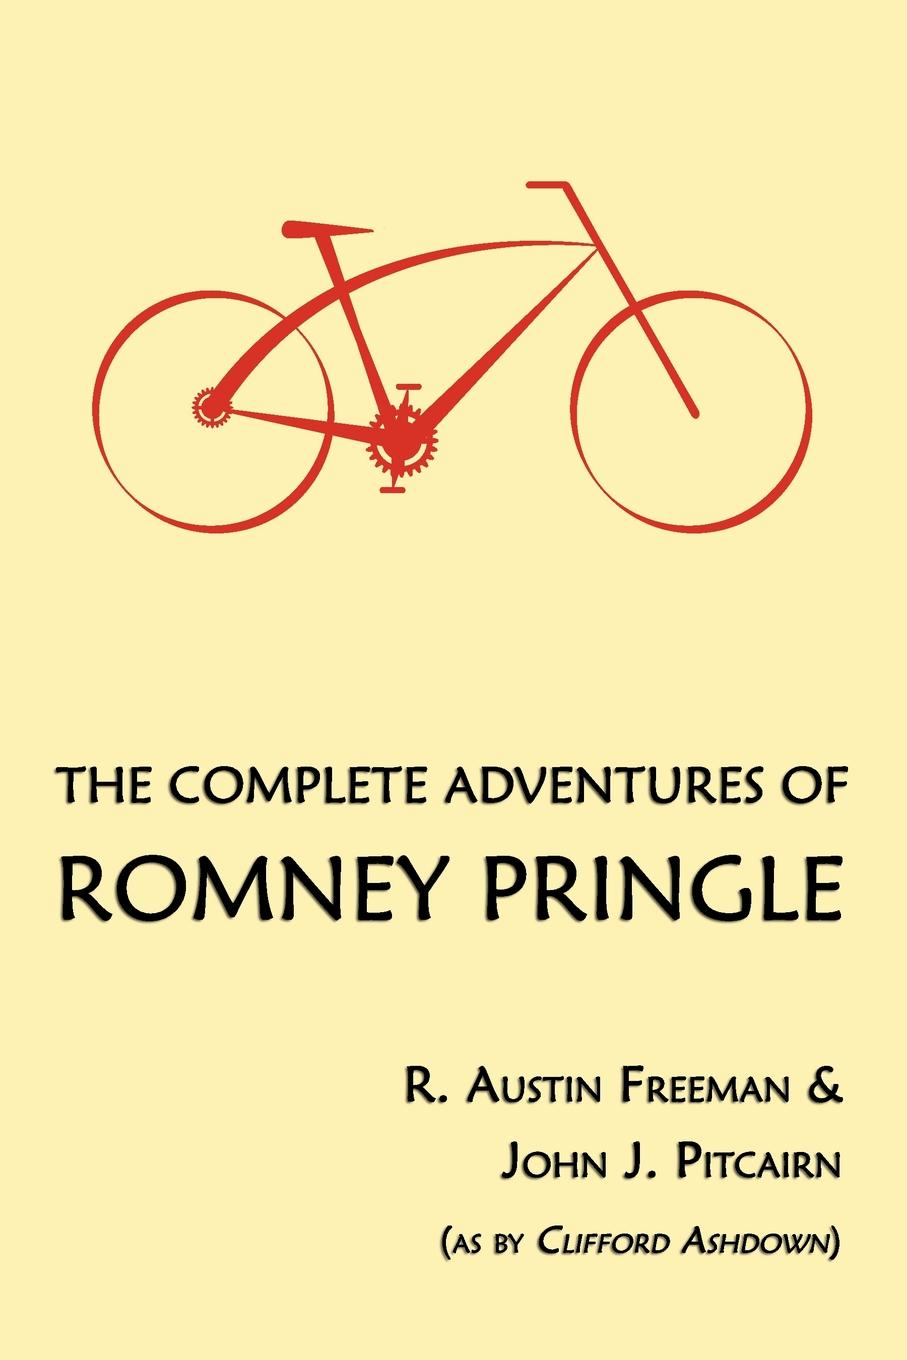 R. Austin Freeman, John J. Pitcairn The Complete Adventures of Romney Pringle r austin freeman the mystery of 31 new inn large print edition